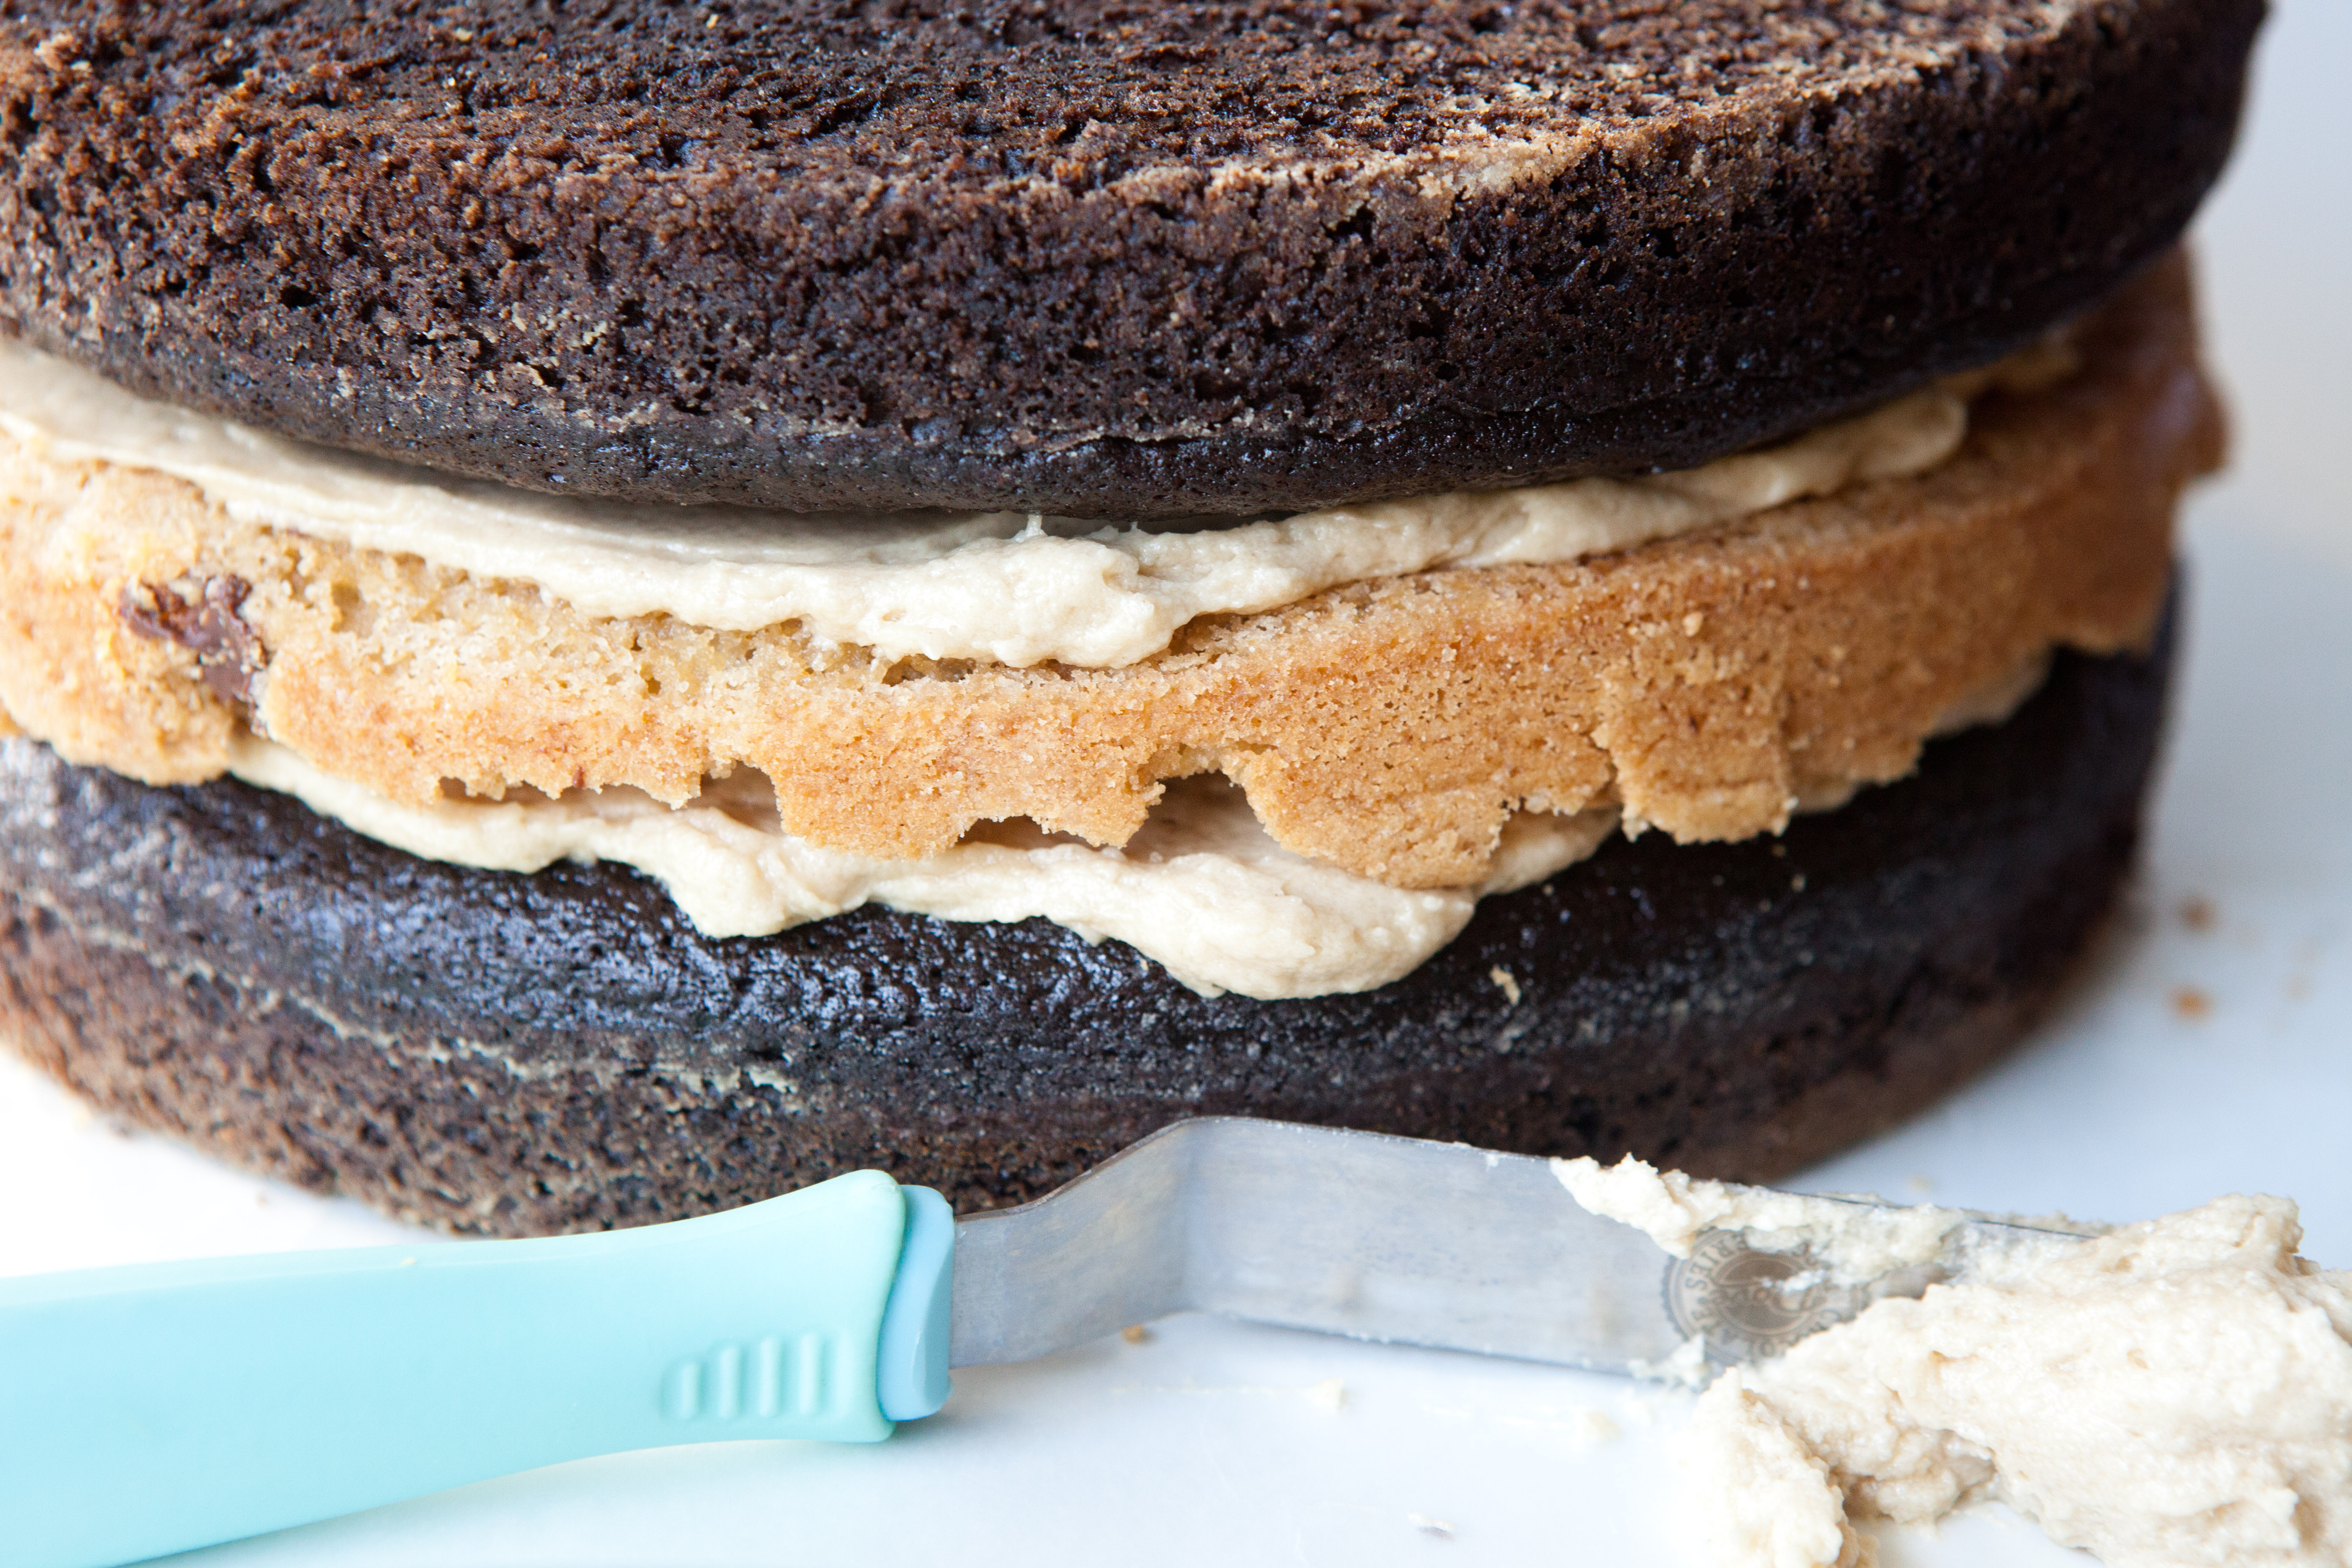 ... 2013 at 5616 × 3744 in Chocolate + Chocolate Chip Cookie Layer Cake